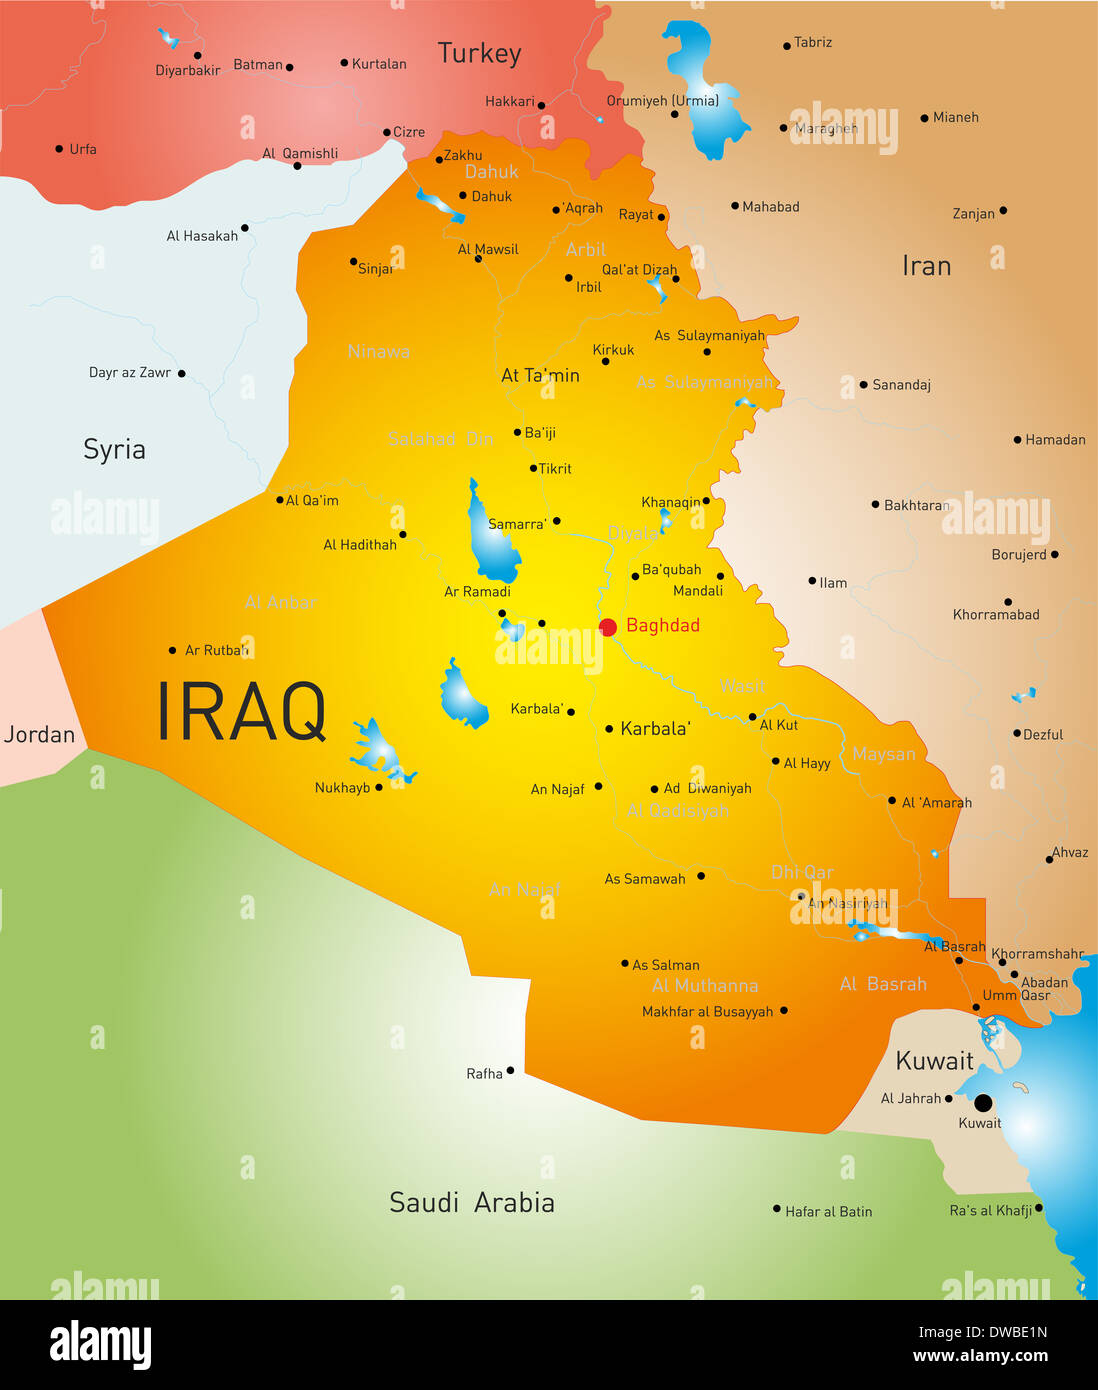 Iraq country stock photo 67250001 alamy iraq country gumiabroncs Gallery